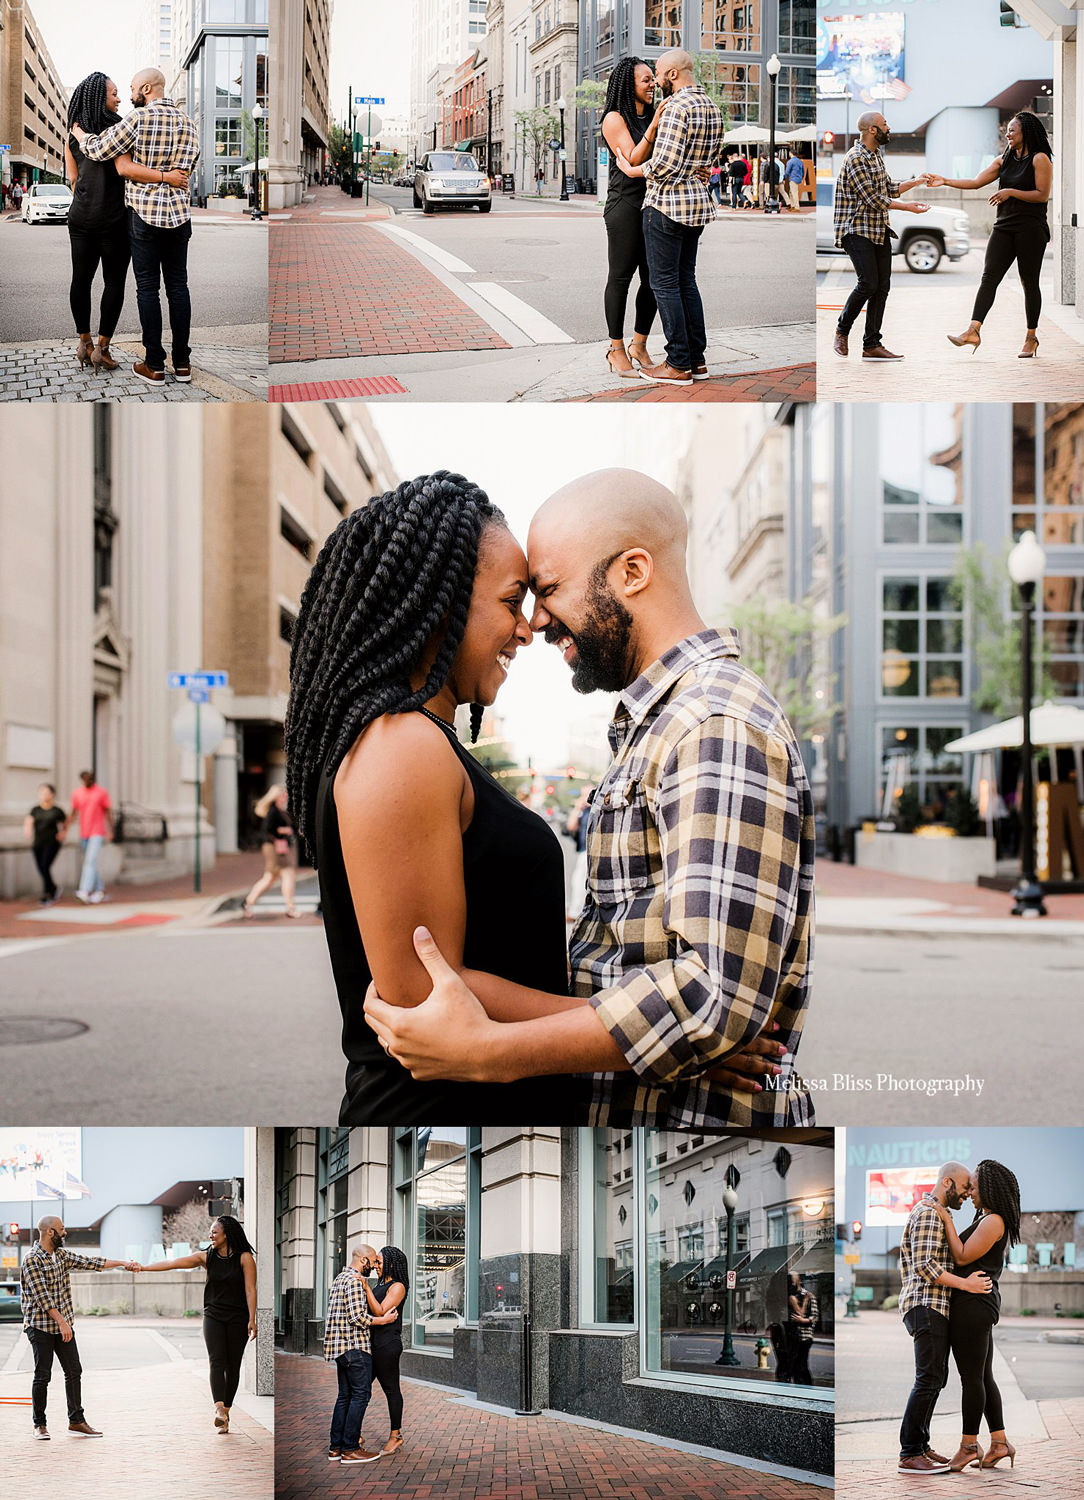 downtown-norfolk-engagement-photos-melissa-bliss-photography-nc-wedding-photographer.jpg